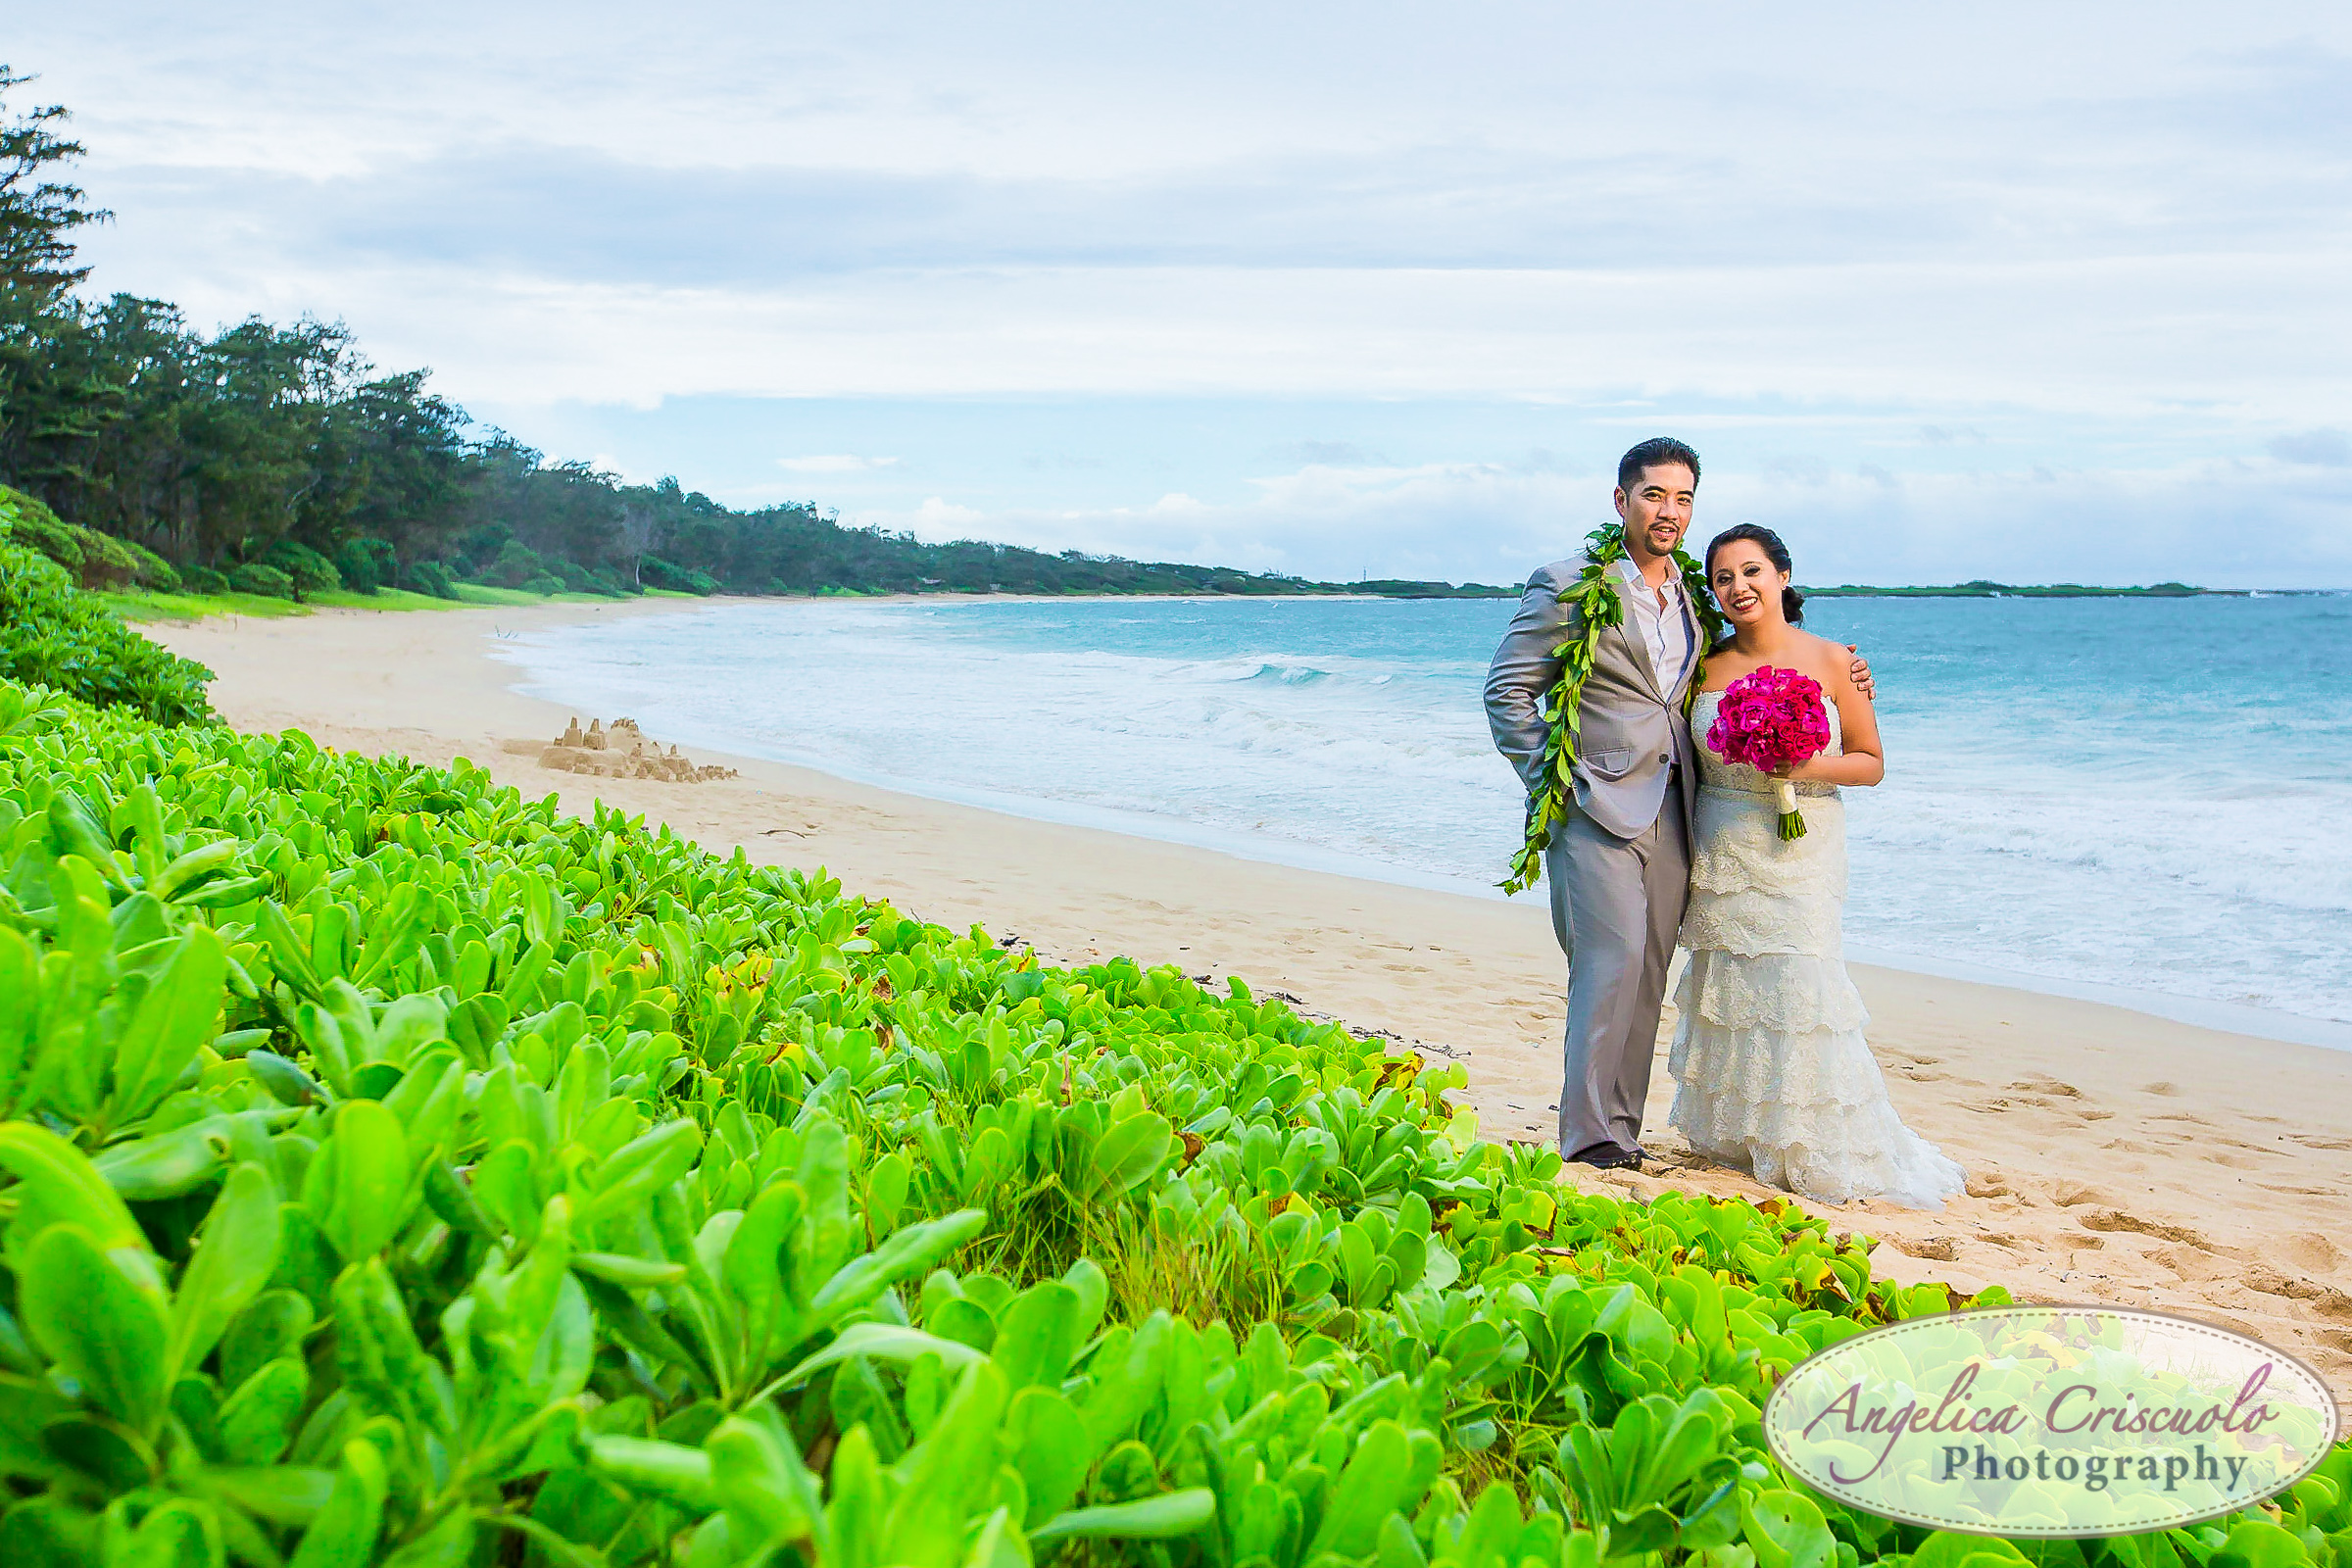 Sunset Hawaii Oahu wedding photography ideas on the north shore beach